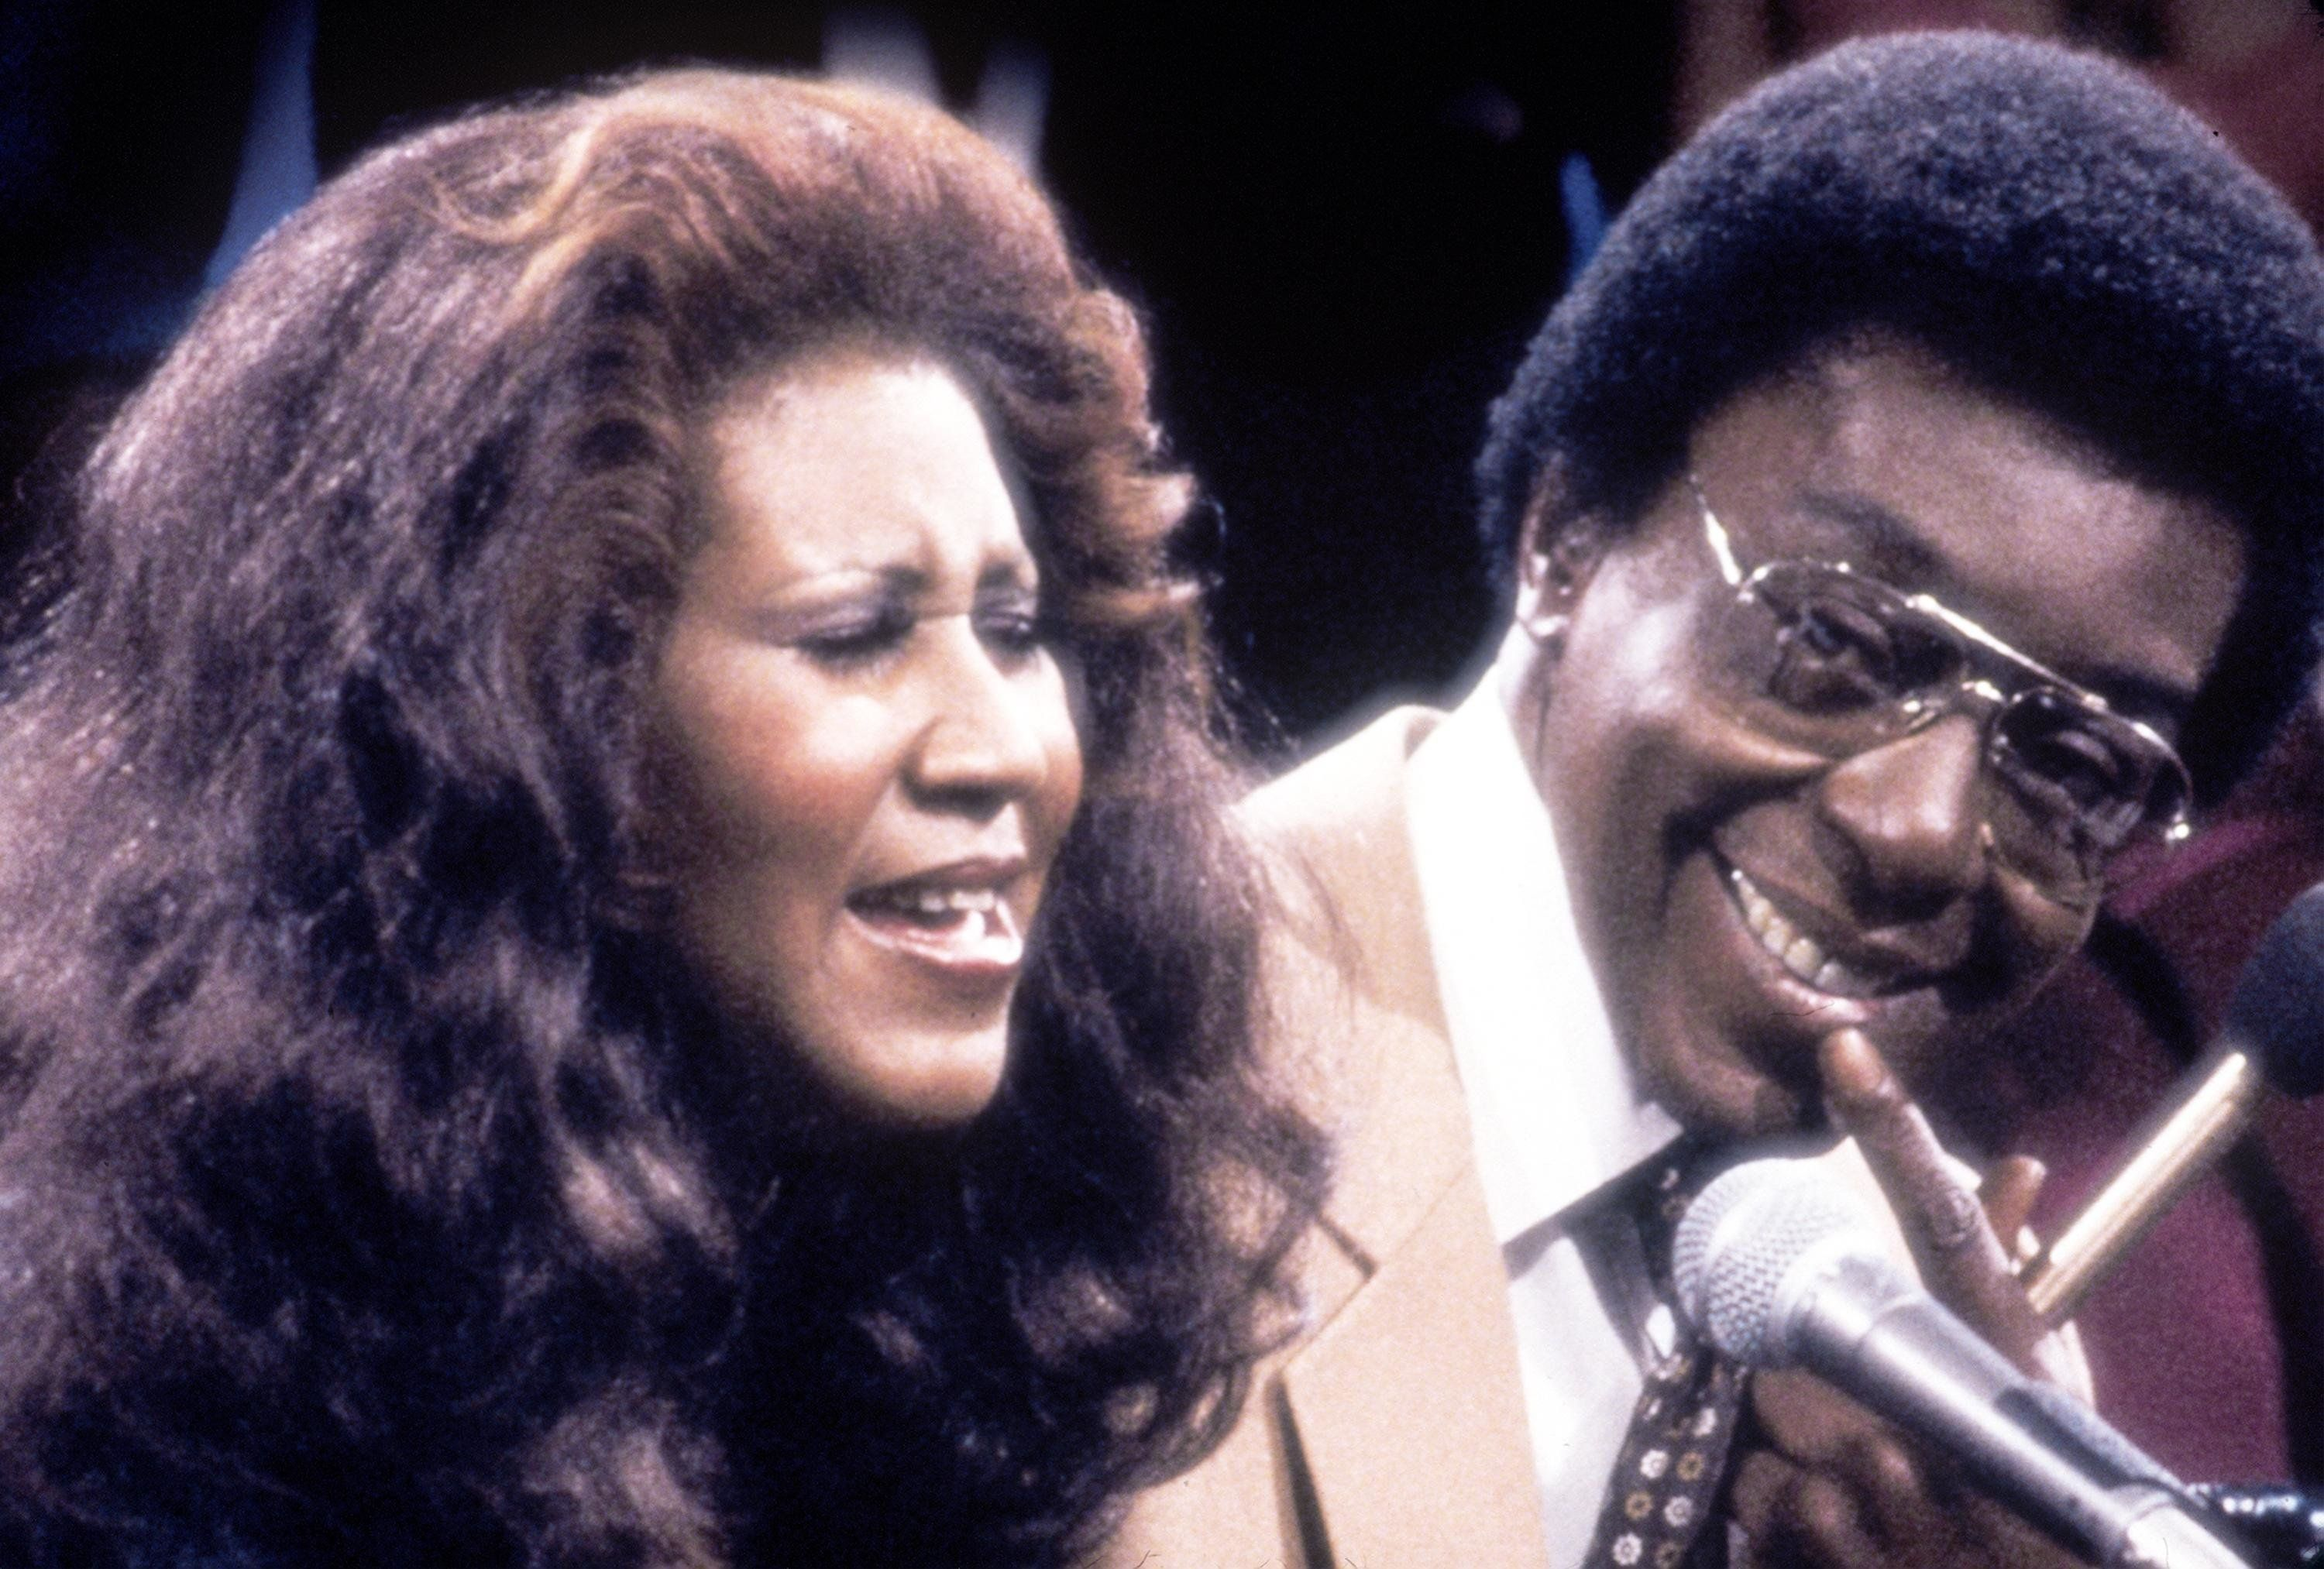 384820 04: Singer Aretha Franklin with show host and producer Don Cornelius. Franklin was one of many entertainers who performed on 'Soul Train' in the 1970''s, part of the Soul Train 30th Anniversary 'Divas and Kings 2000 & Beyond.' (Photo by 2001 Tribune Entertainment)